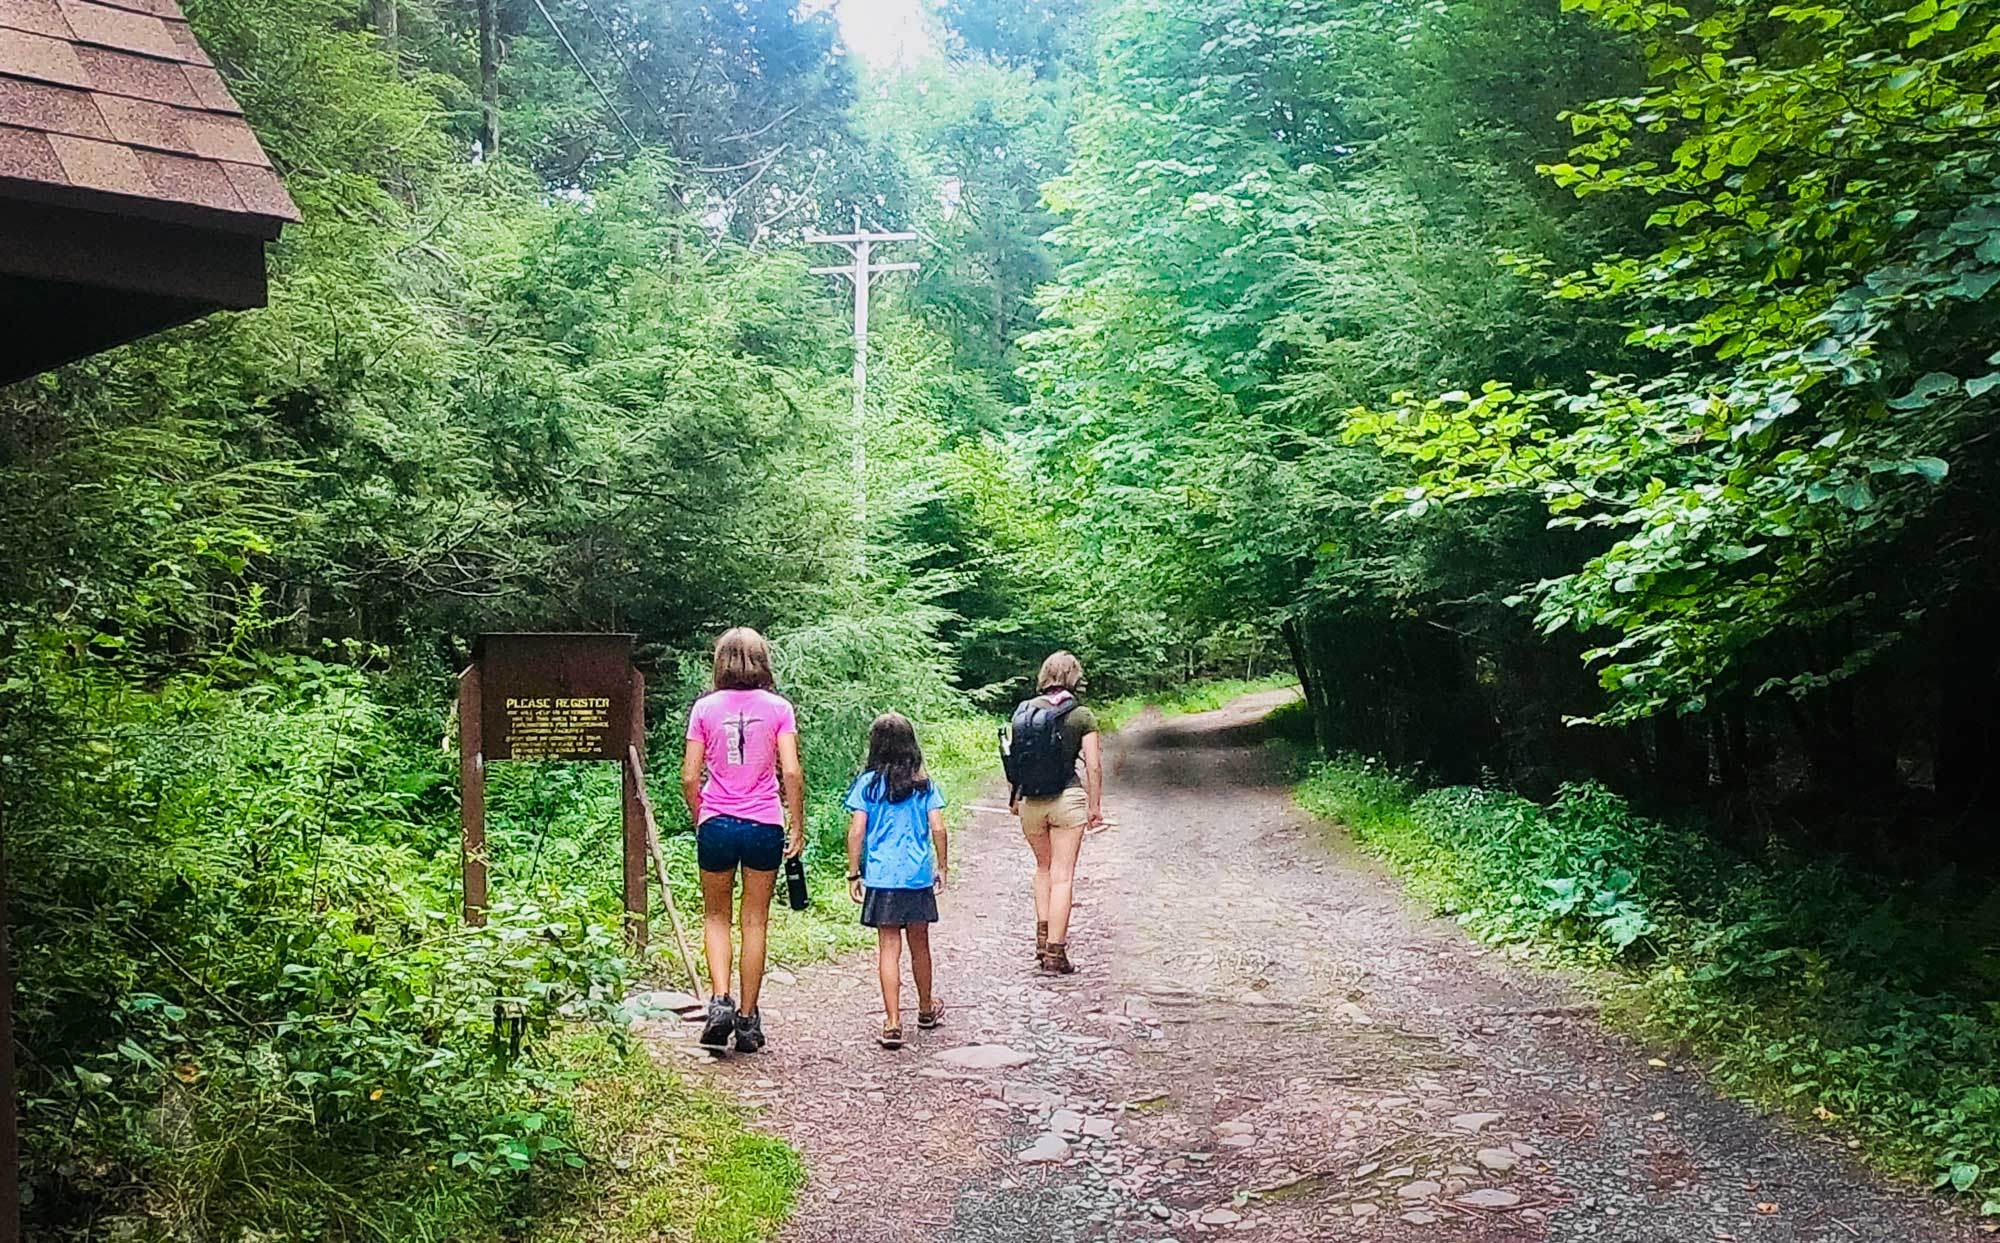 Three girls at the trailhead of the Overlook Mountain Trailhead, a former carriage road, in Catskill Mountains, New York